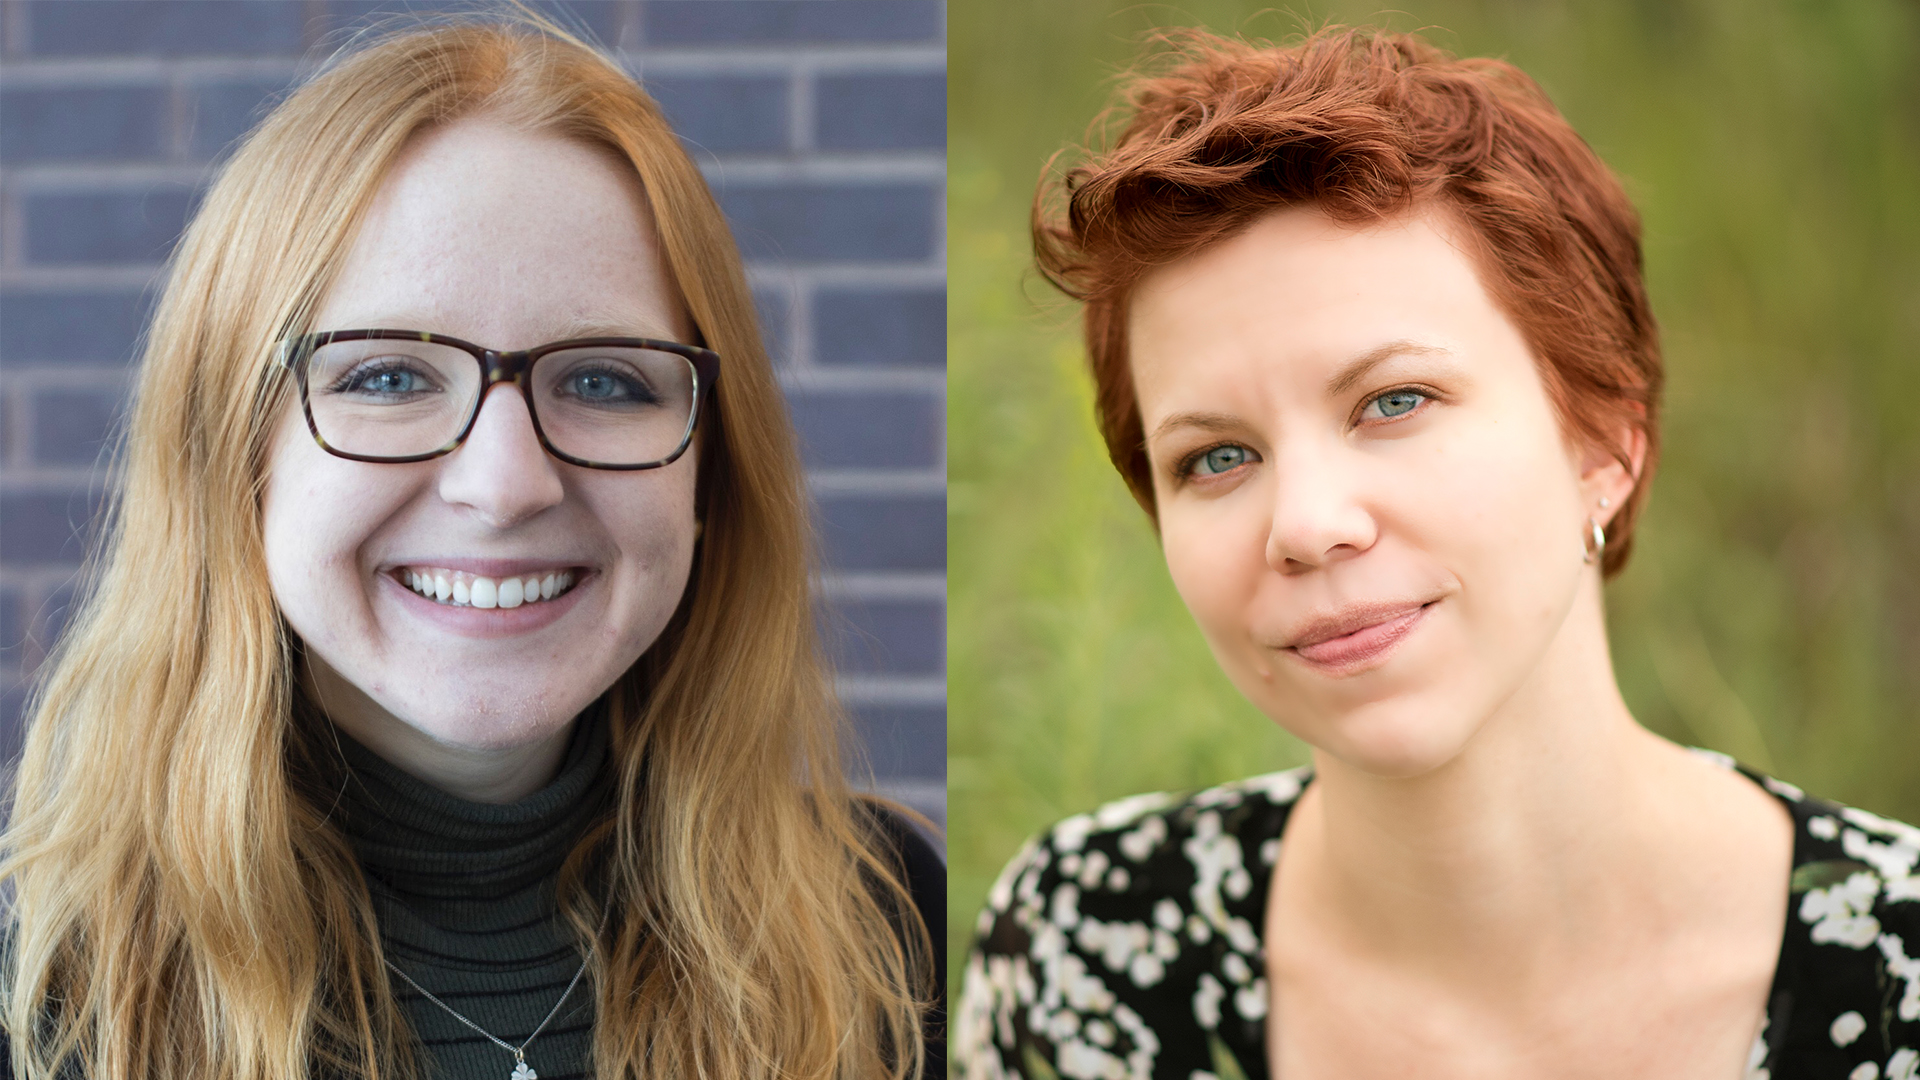 Collage photo of two women. Emily Blobaum, on left, and Ally Karsyn, on right.